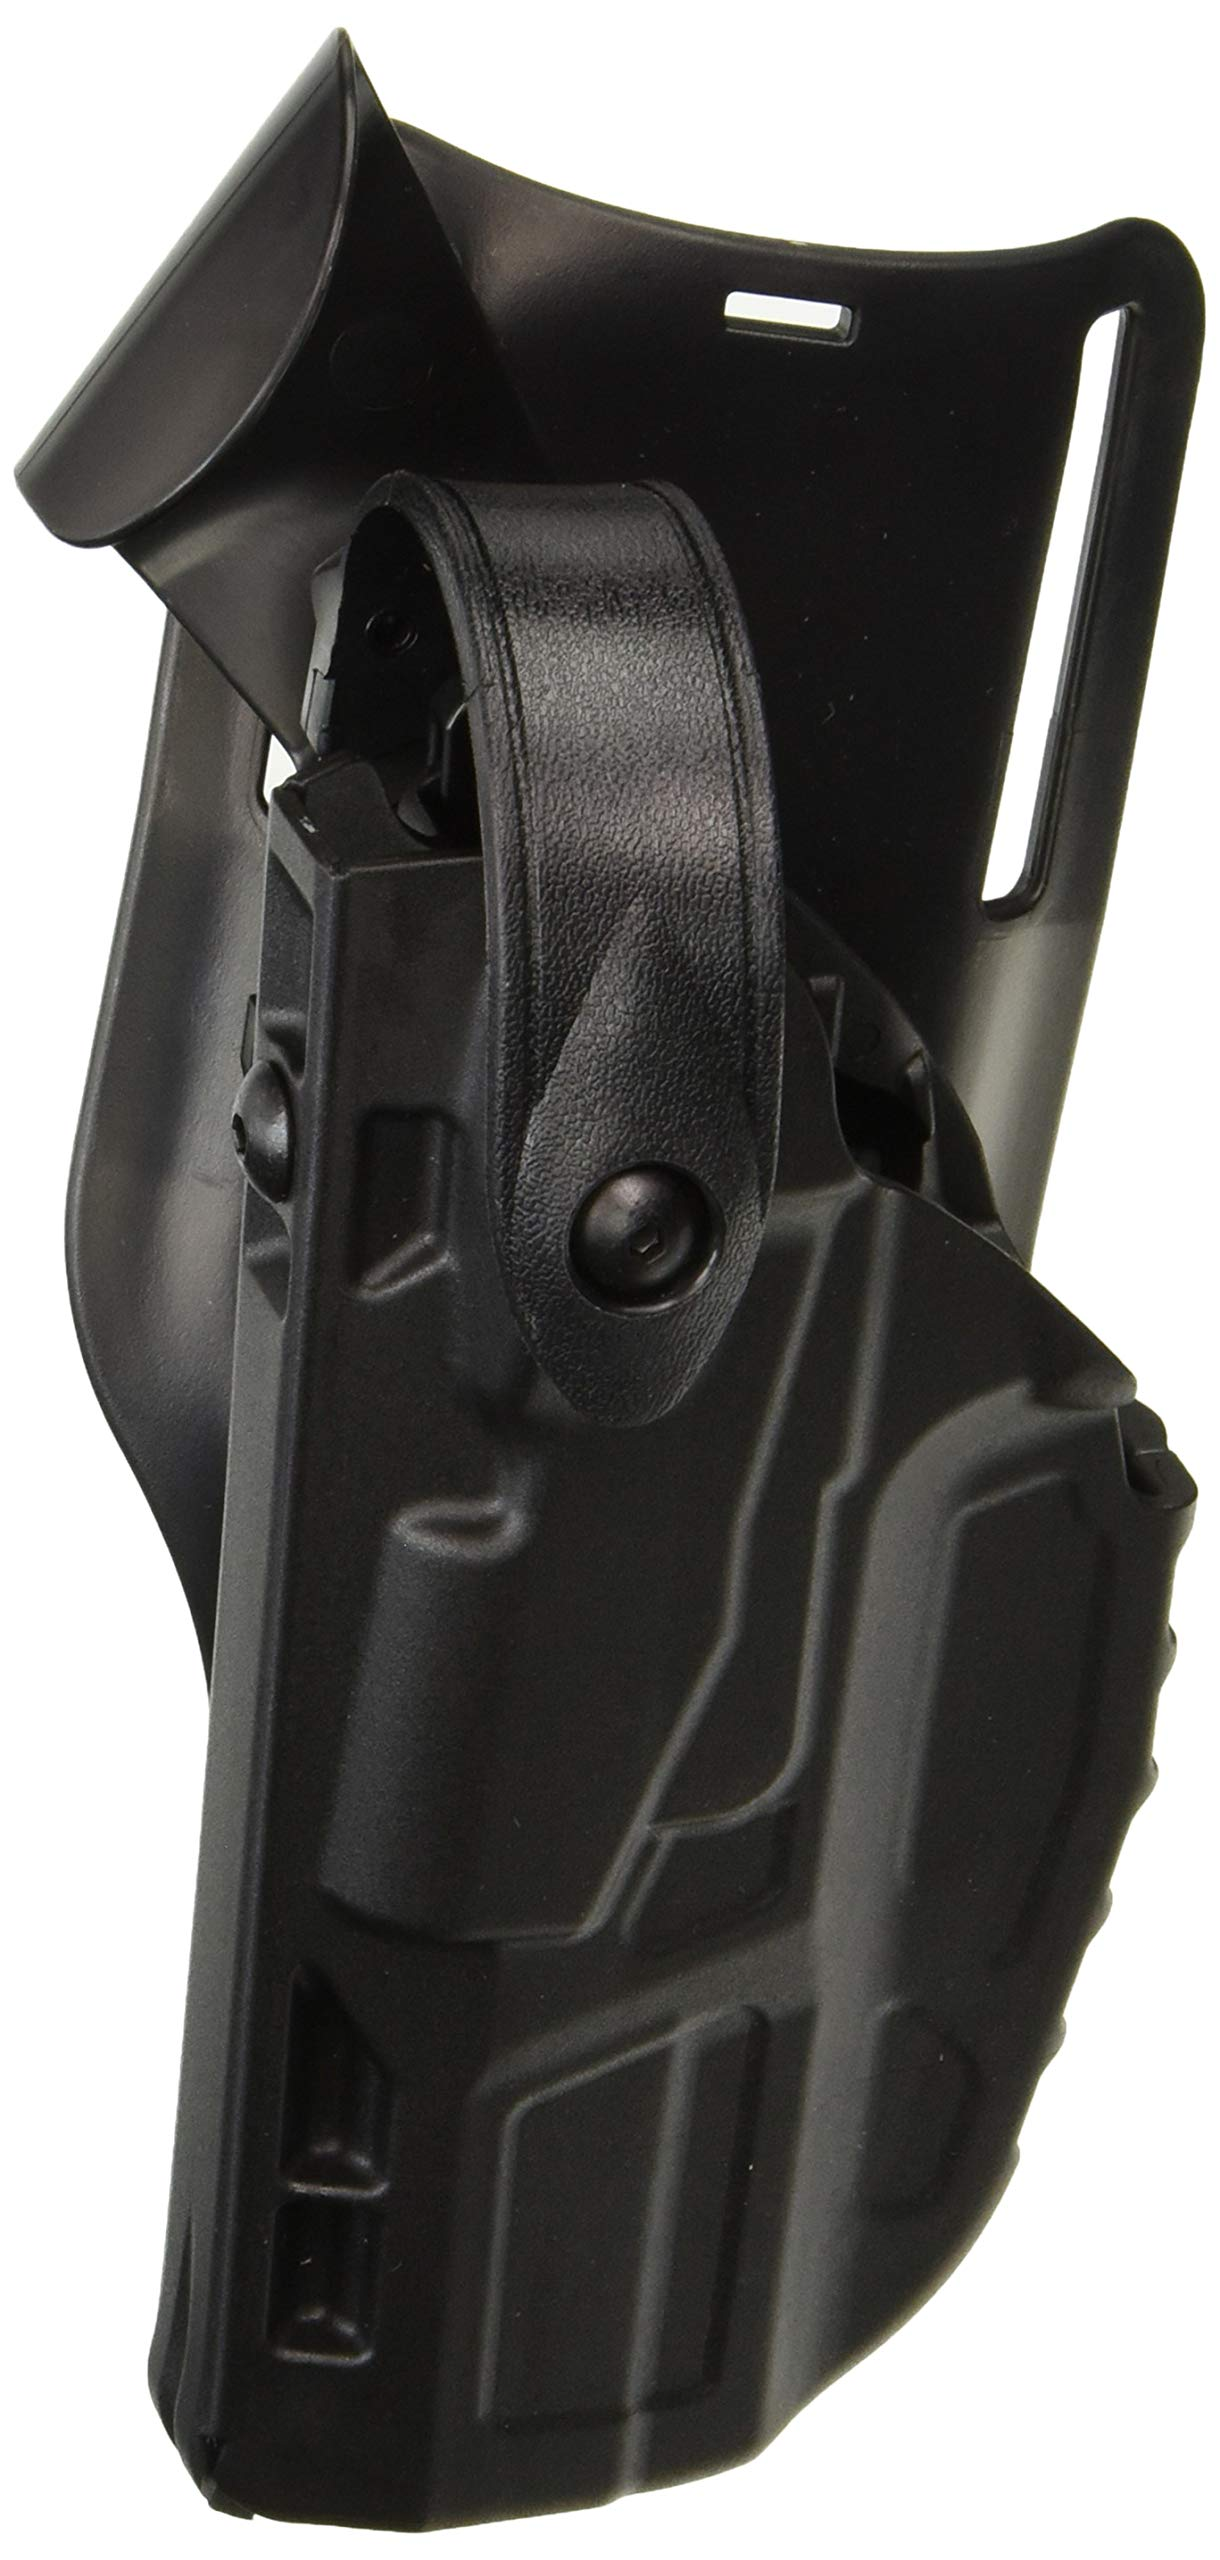 "Safariland 7365 7TS ALS/SLS Low-Ride 1.5"" Drop Level-III Duty S&W M&P 4.25"" Holster"